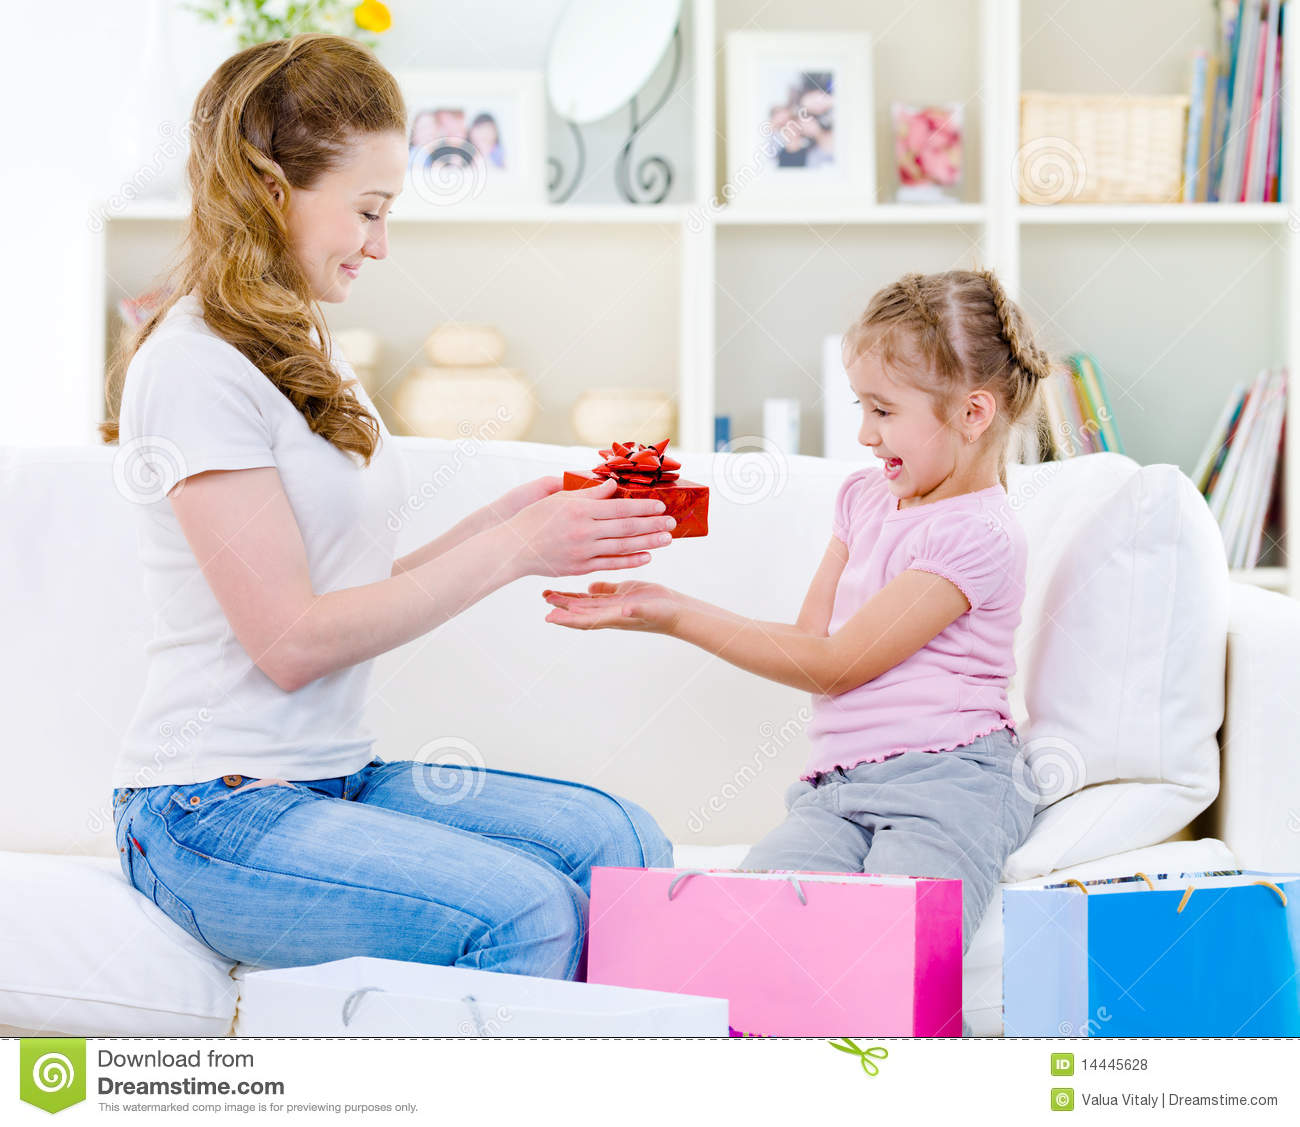 Cv   portfolio amitb moreover Stock Photo Happy Family Mother Baby Daughter Hugging Laughing Image43888518 further Royalty Free Stock Photo  fort Protection Child Parents House Hands Image31325905 besides Stunning Sunday H tons Style in addition Pets At Home Designing Dog Rooms. on pretty family home plans